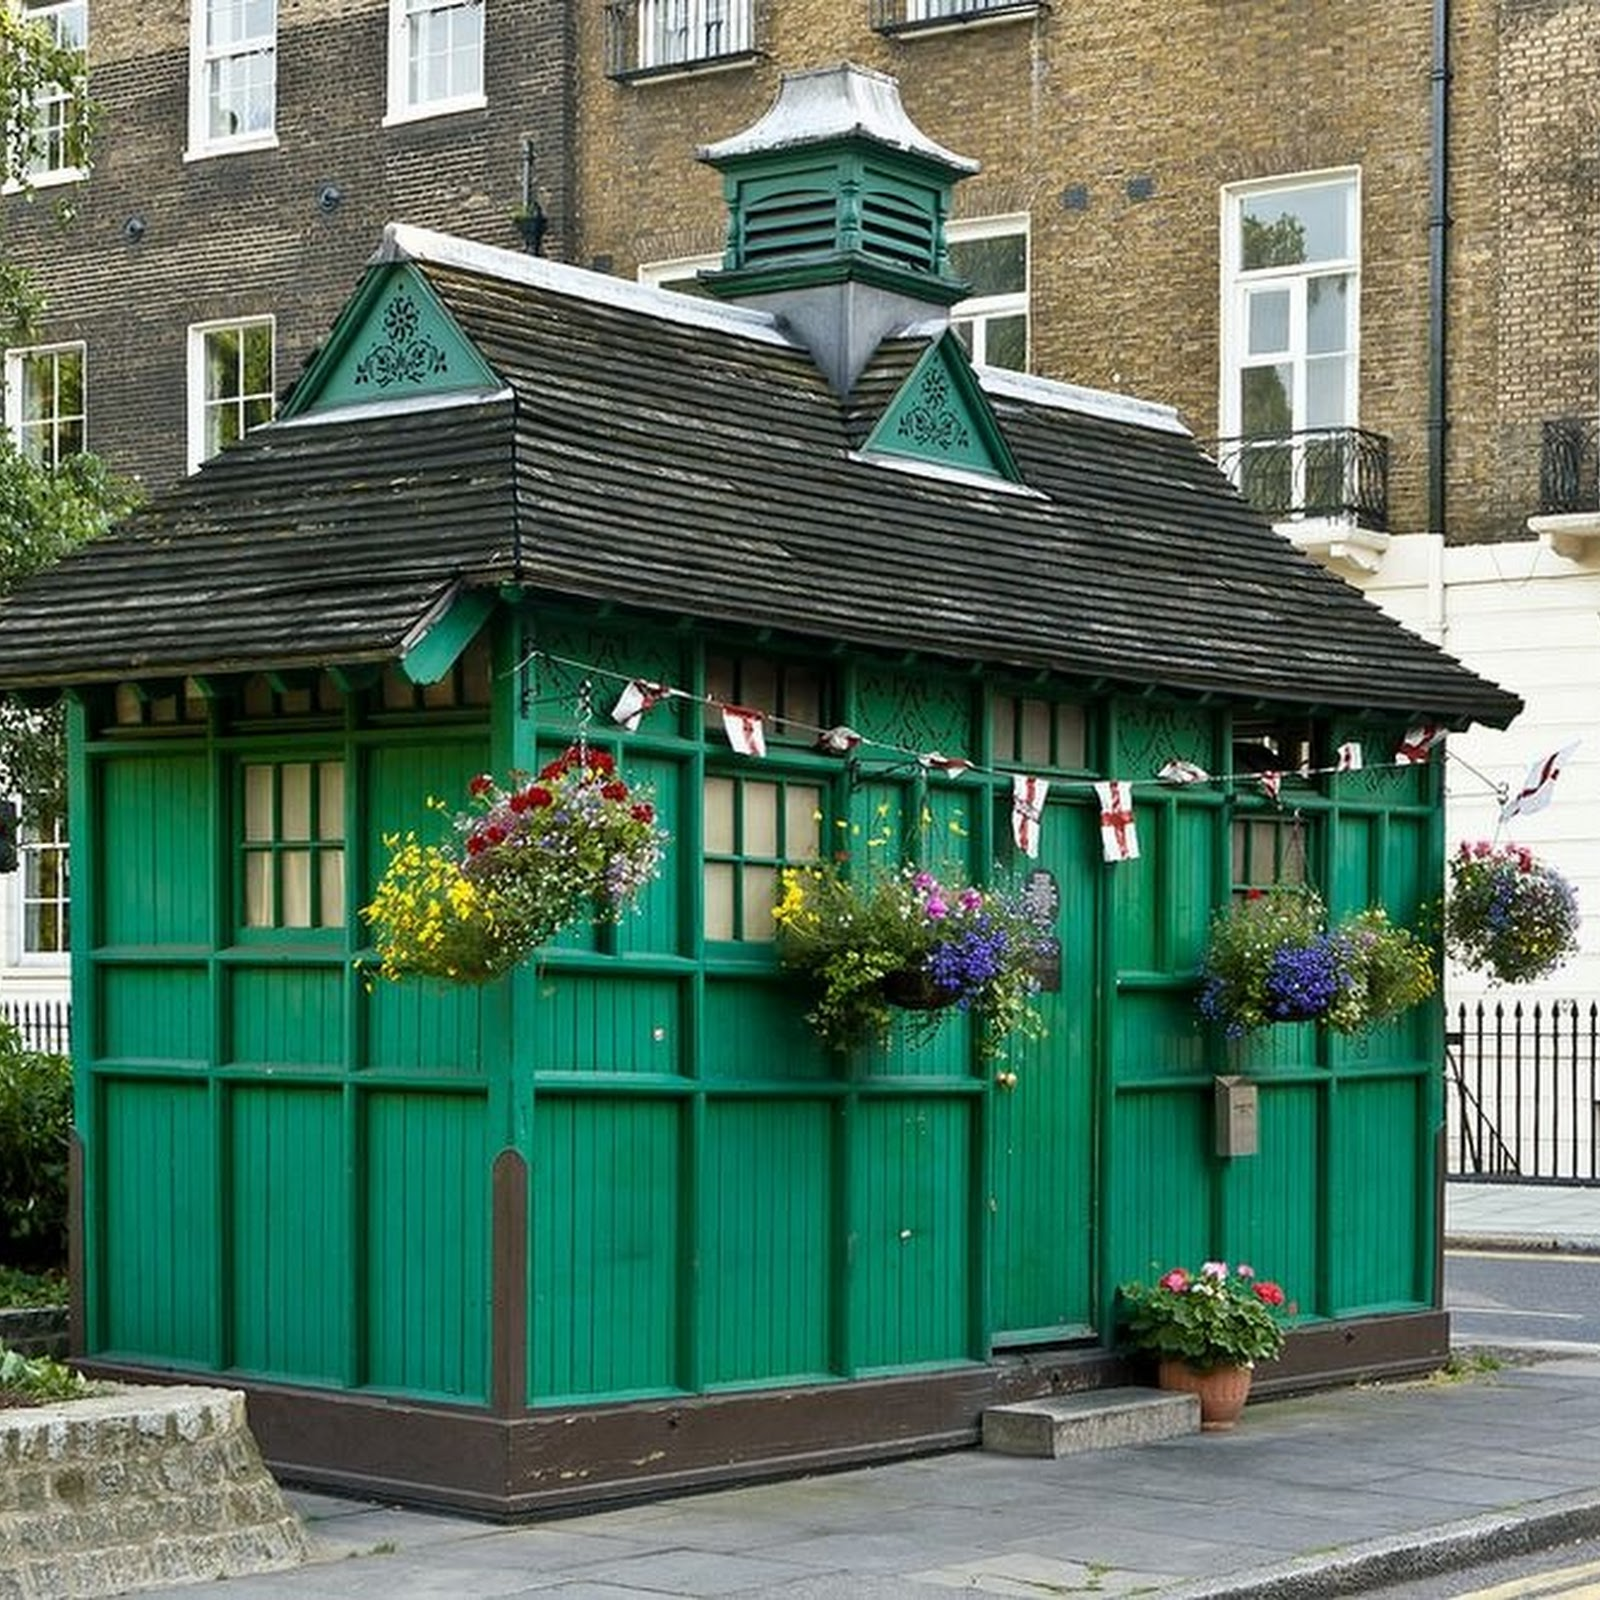 London's Cabmen's Shelters